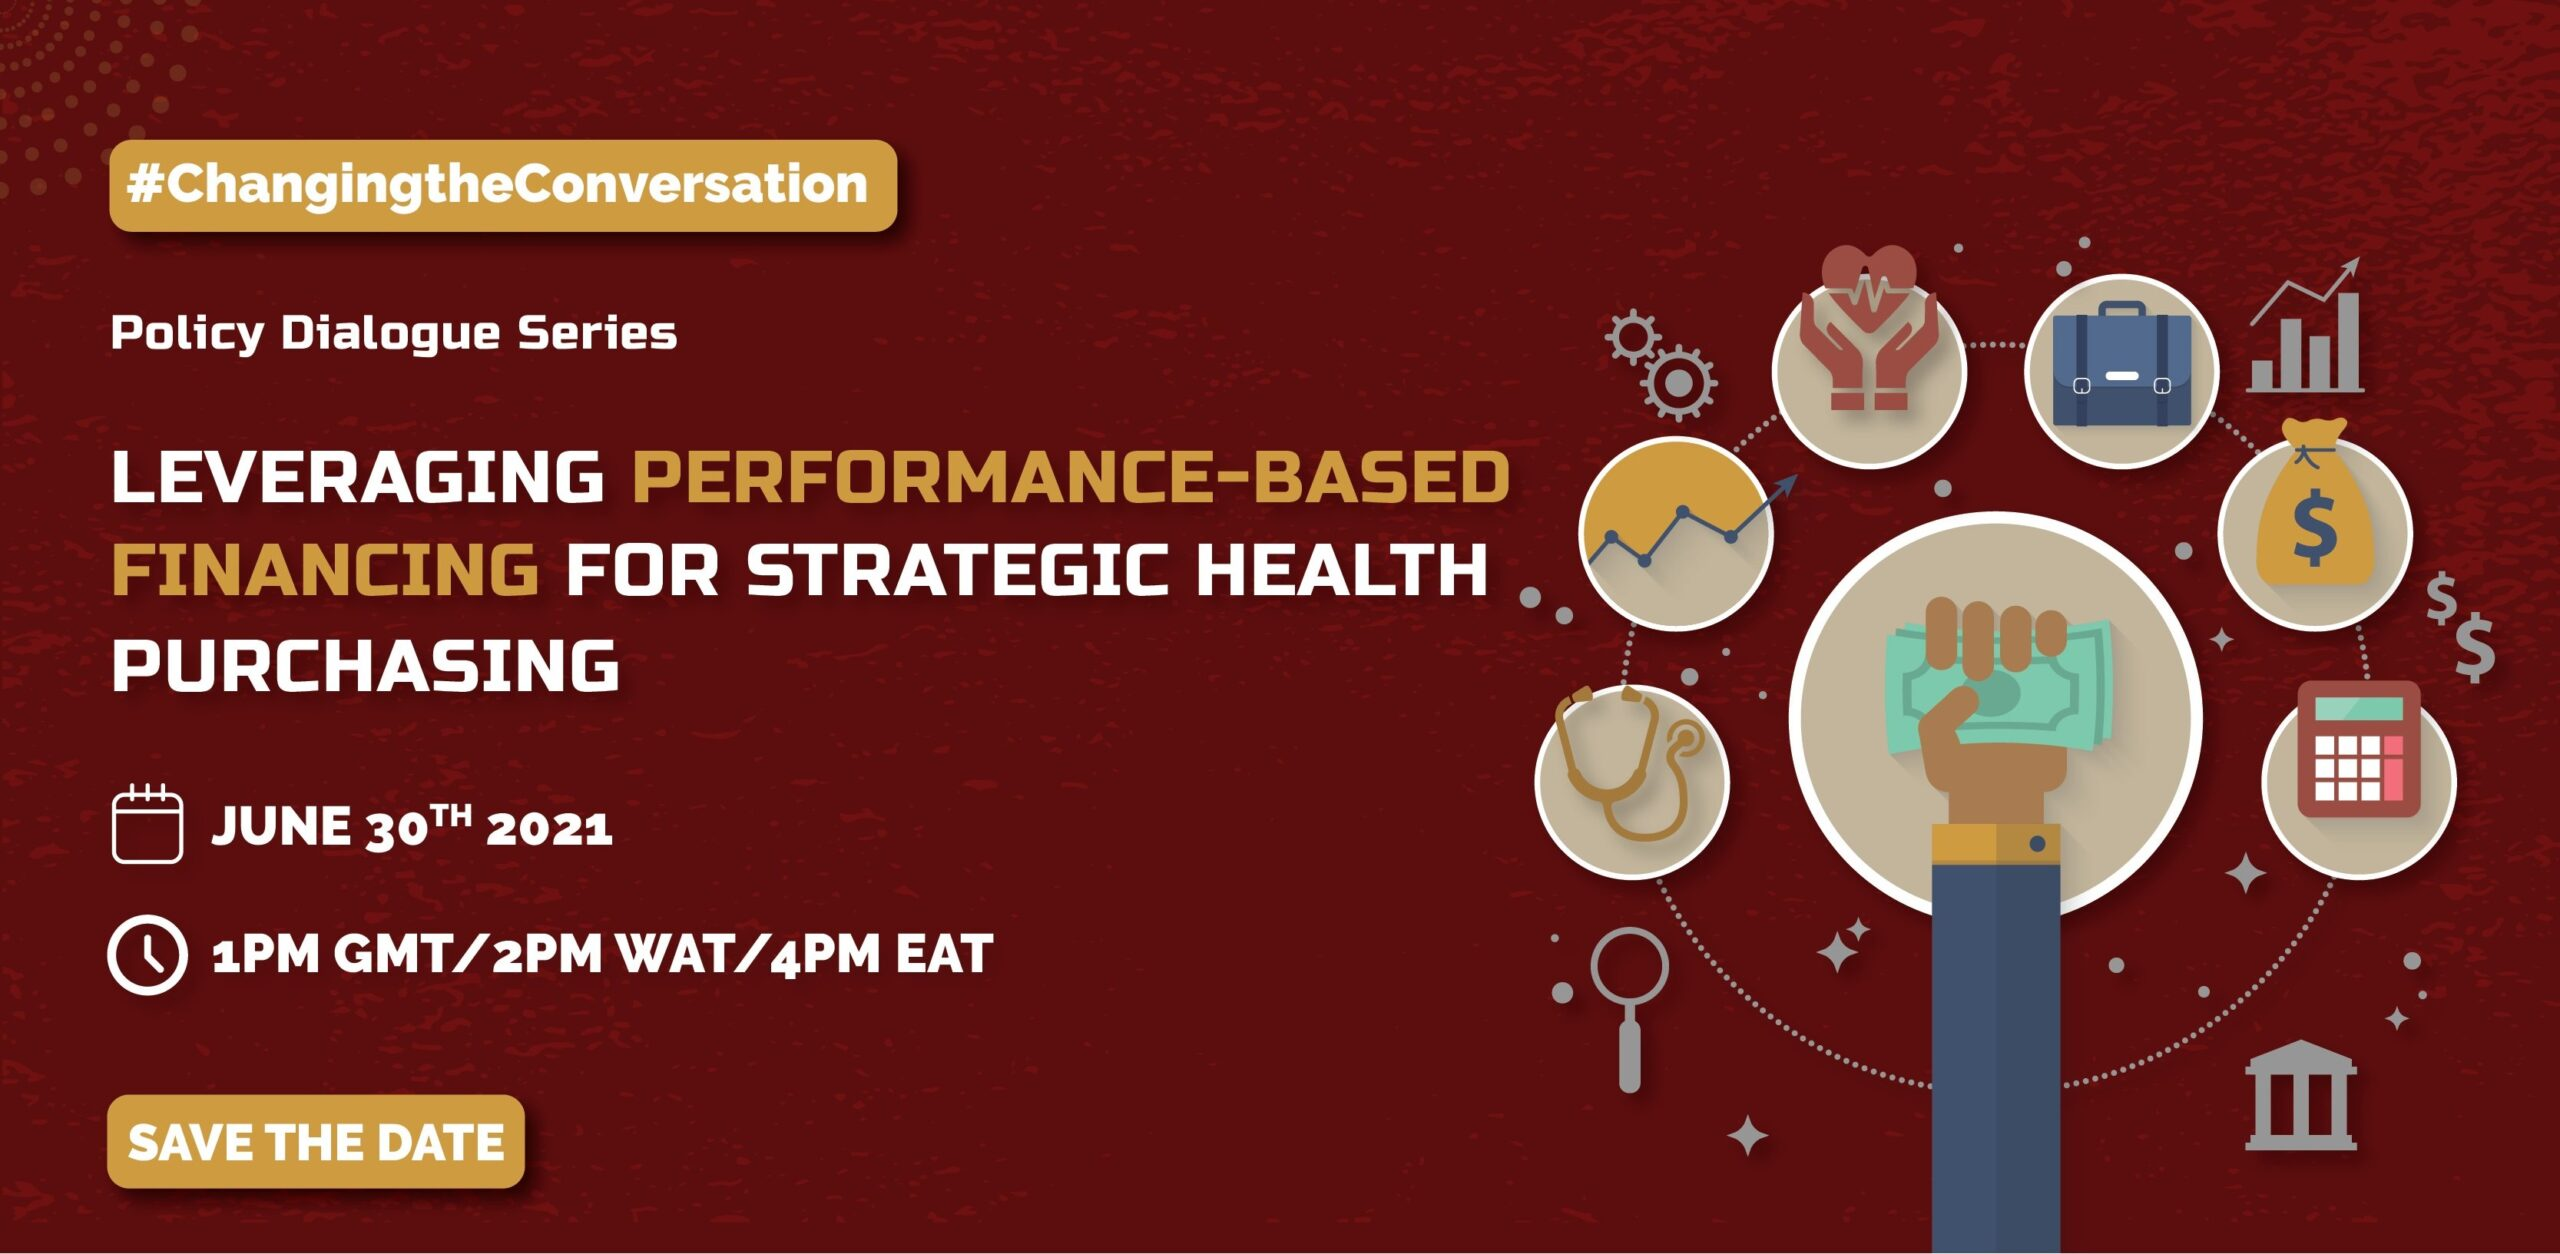 Leveraging Performance-Based Financing for Strategic Health Purchasing